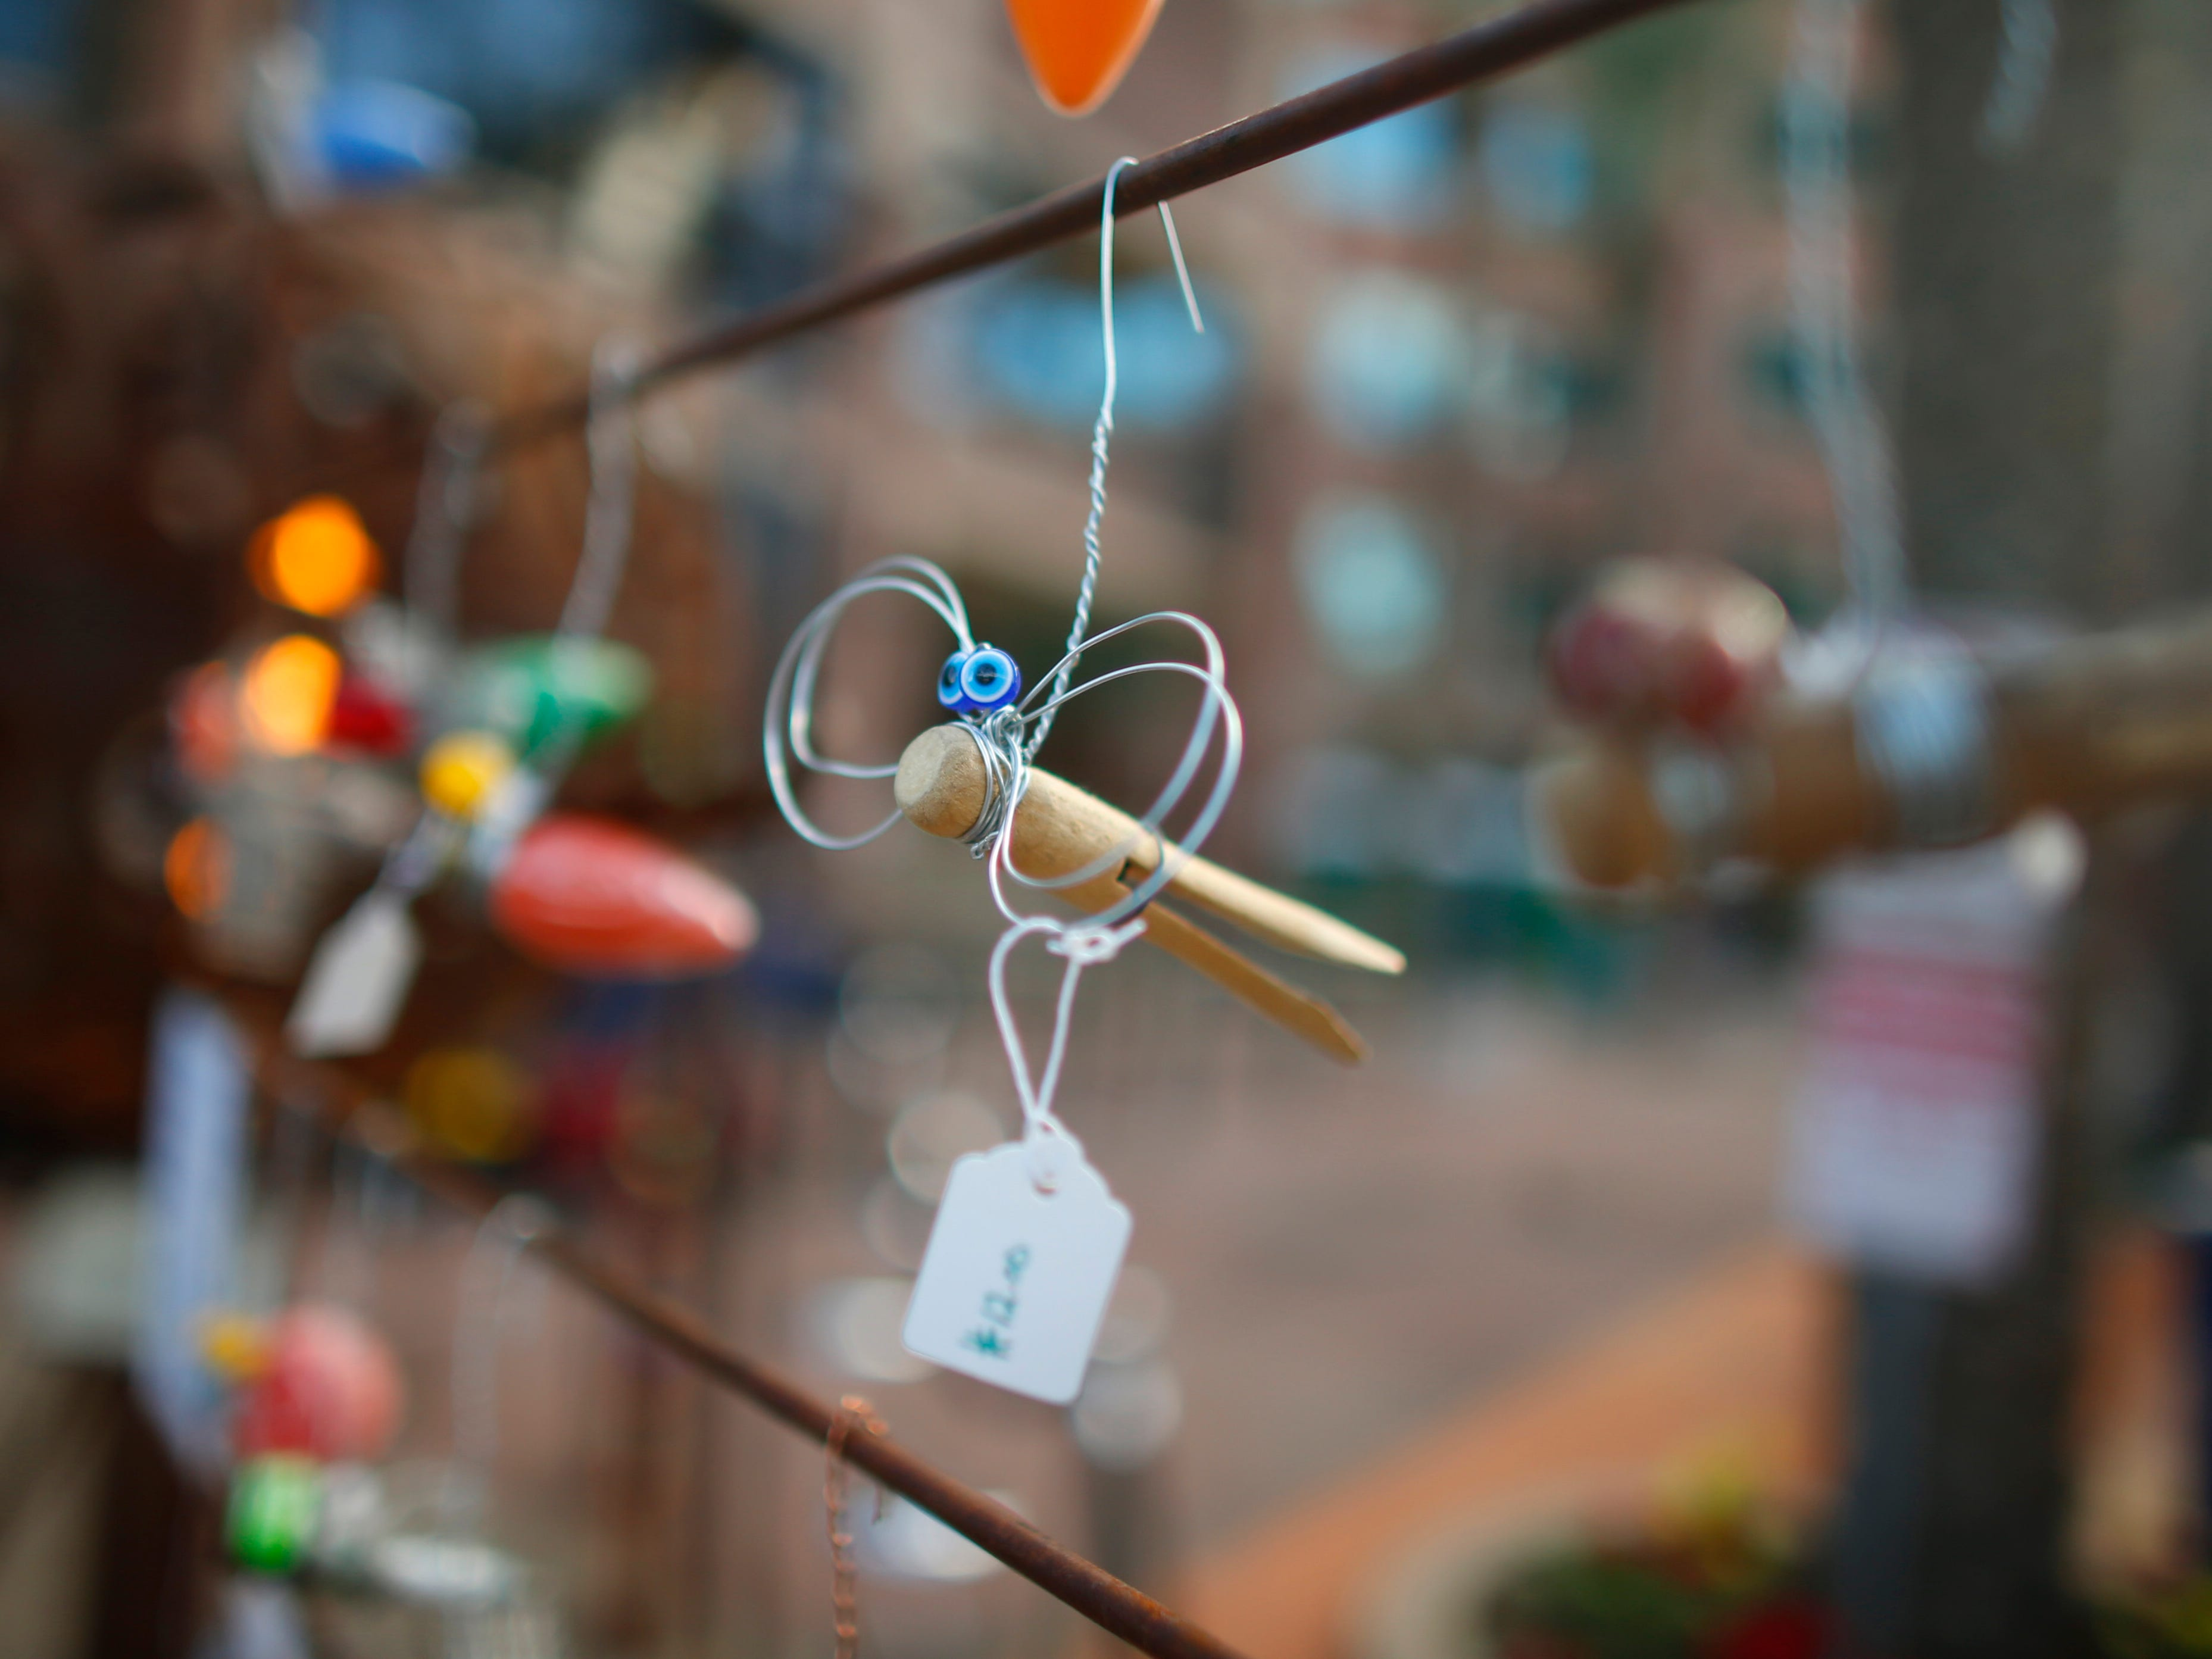 Tiny sculptures for sale at the Tempe Festival of the Arts on Mill Avenue on Friday, November 30, 2018.